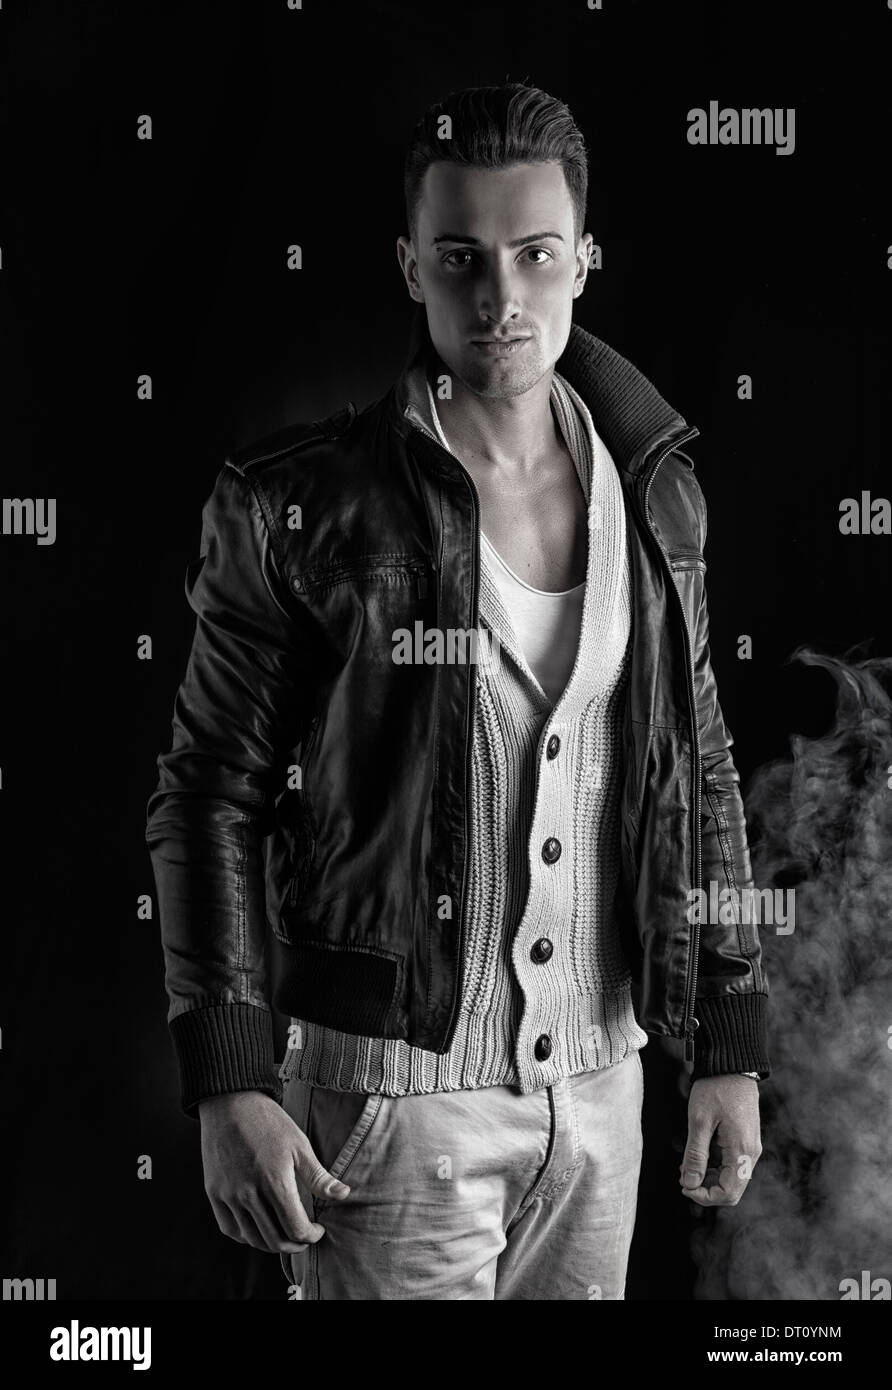 Attractive Young Man With White Sweater And Black Leather Jacket